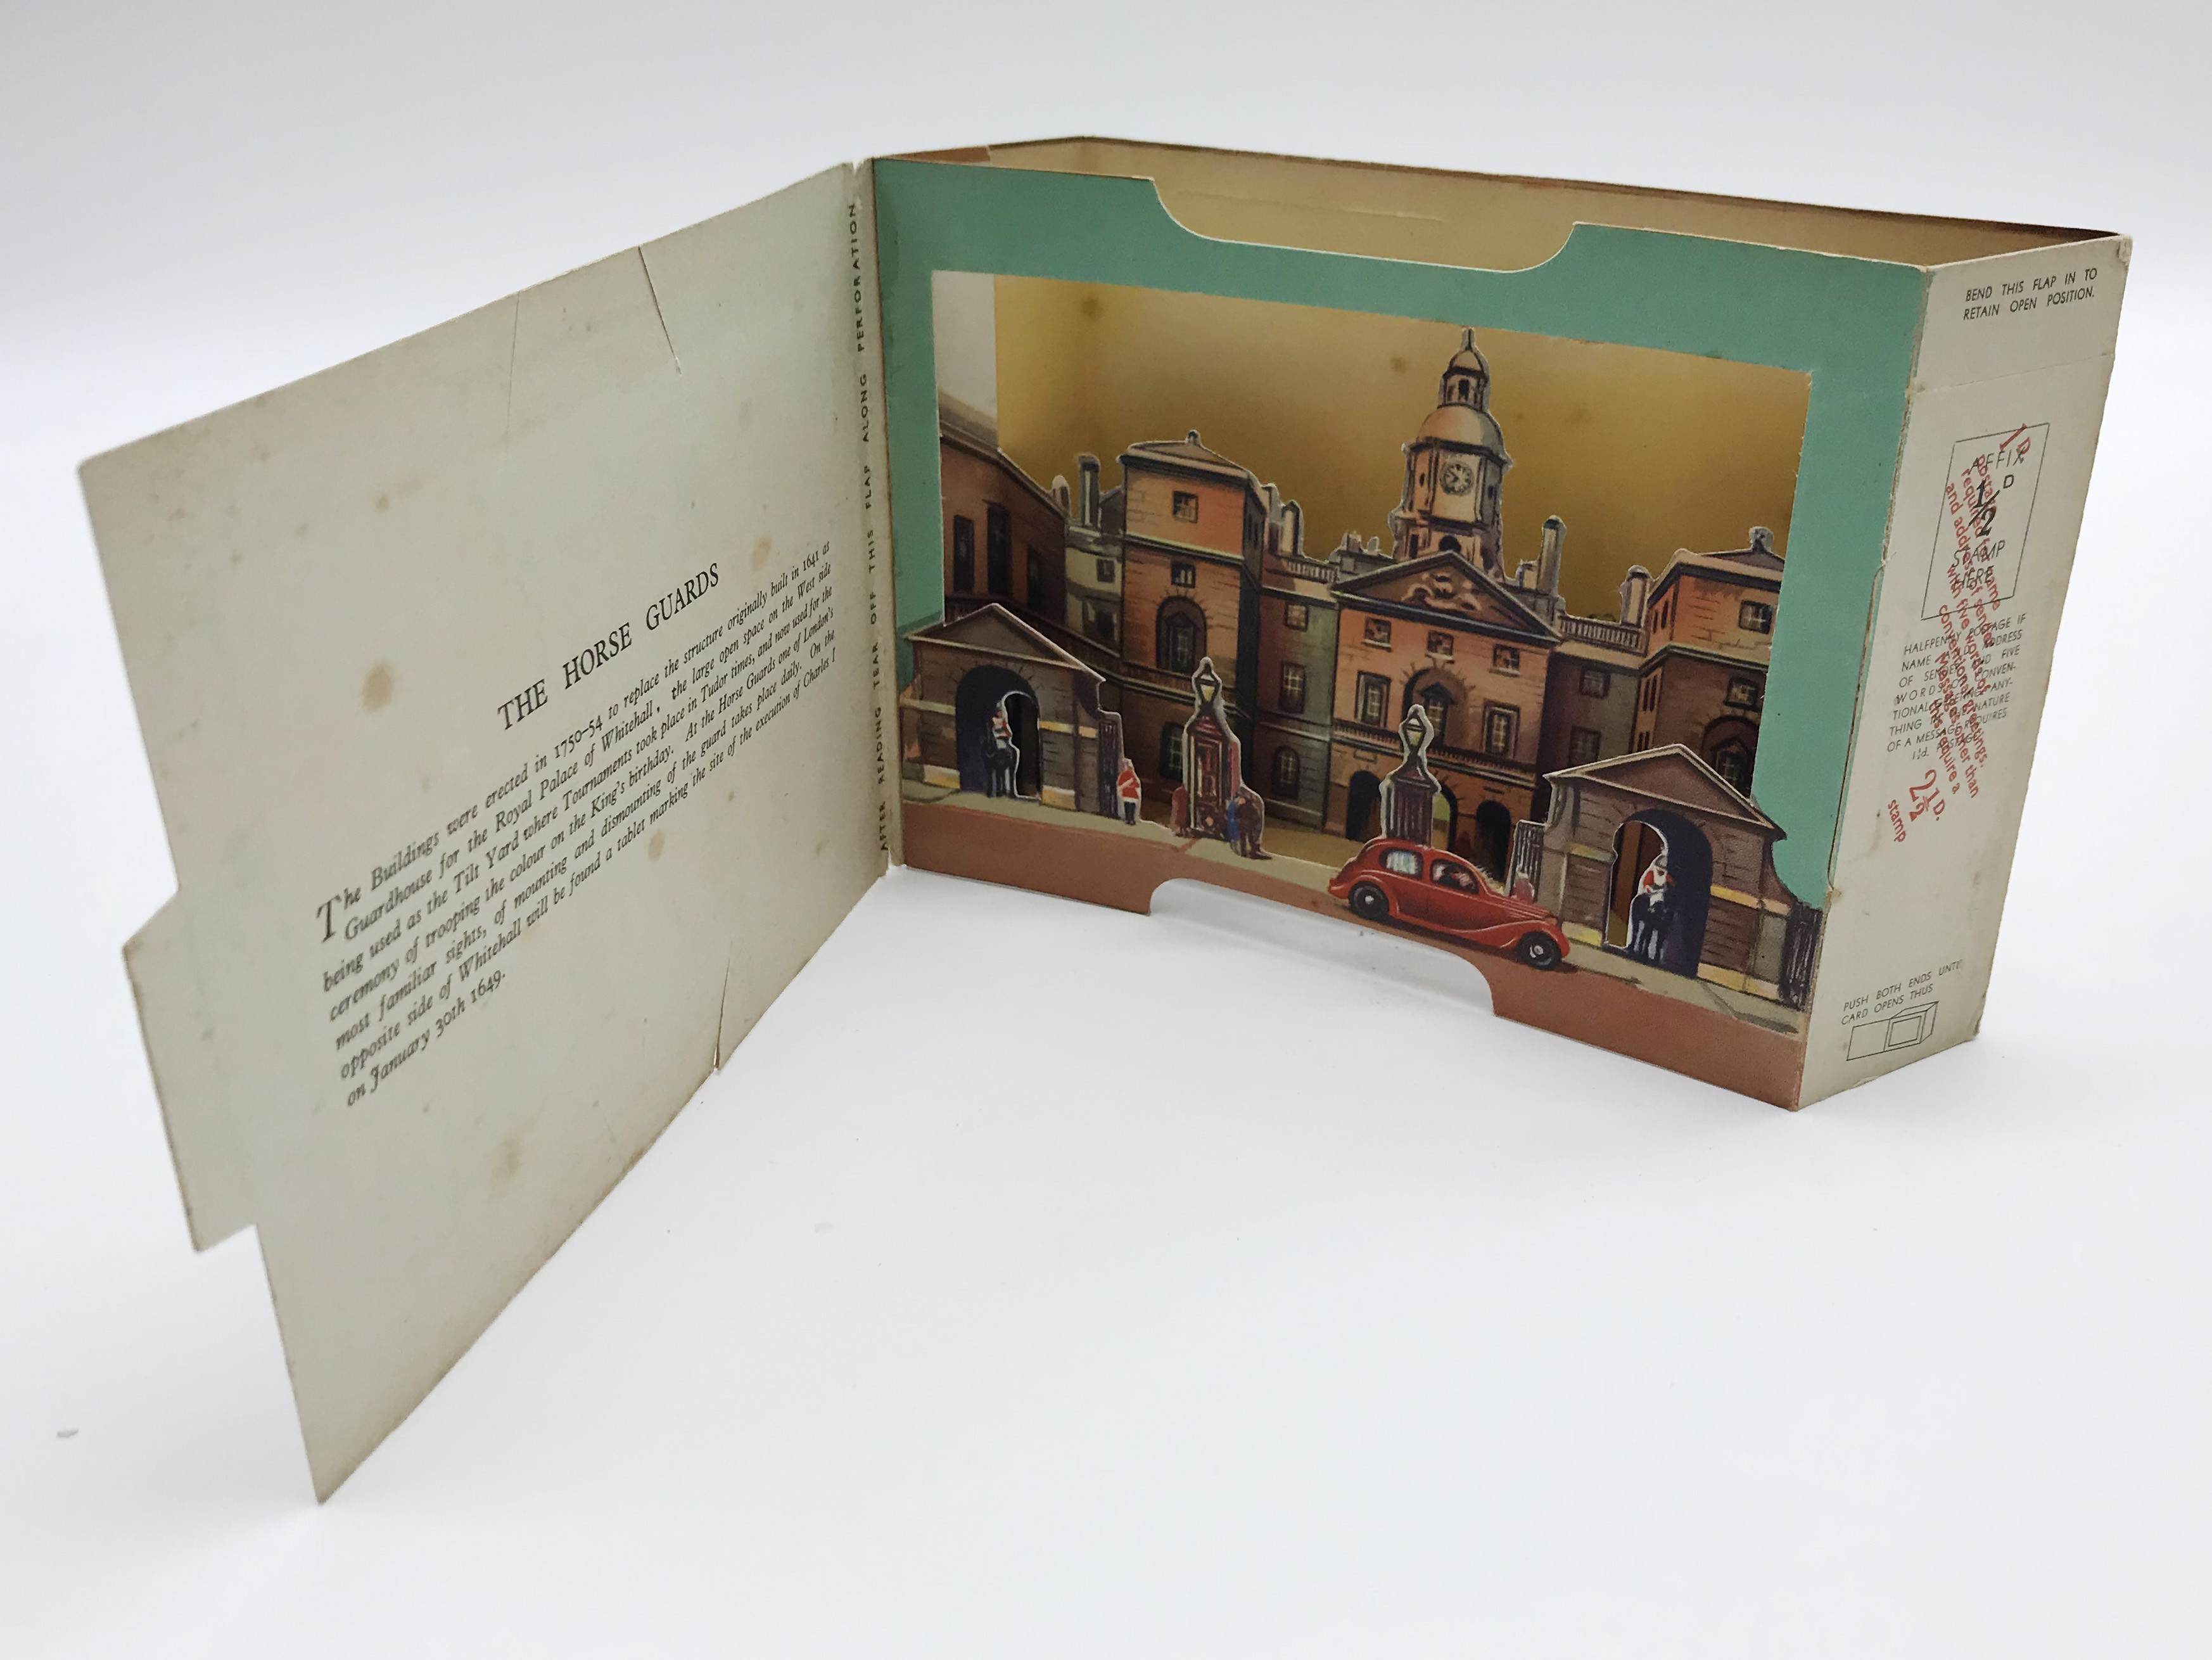 FIVE LONDON POSTCARDS - THE BRENT SERIES OF PANORAMIC VIEW CARDS - Image 8 of 13